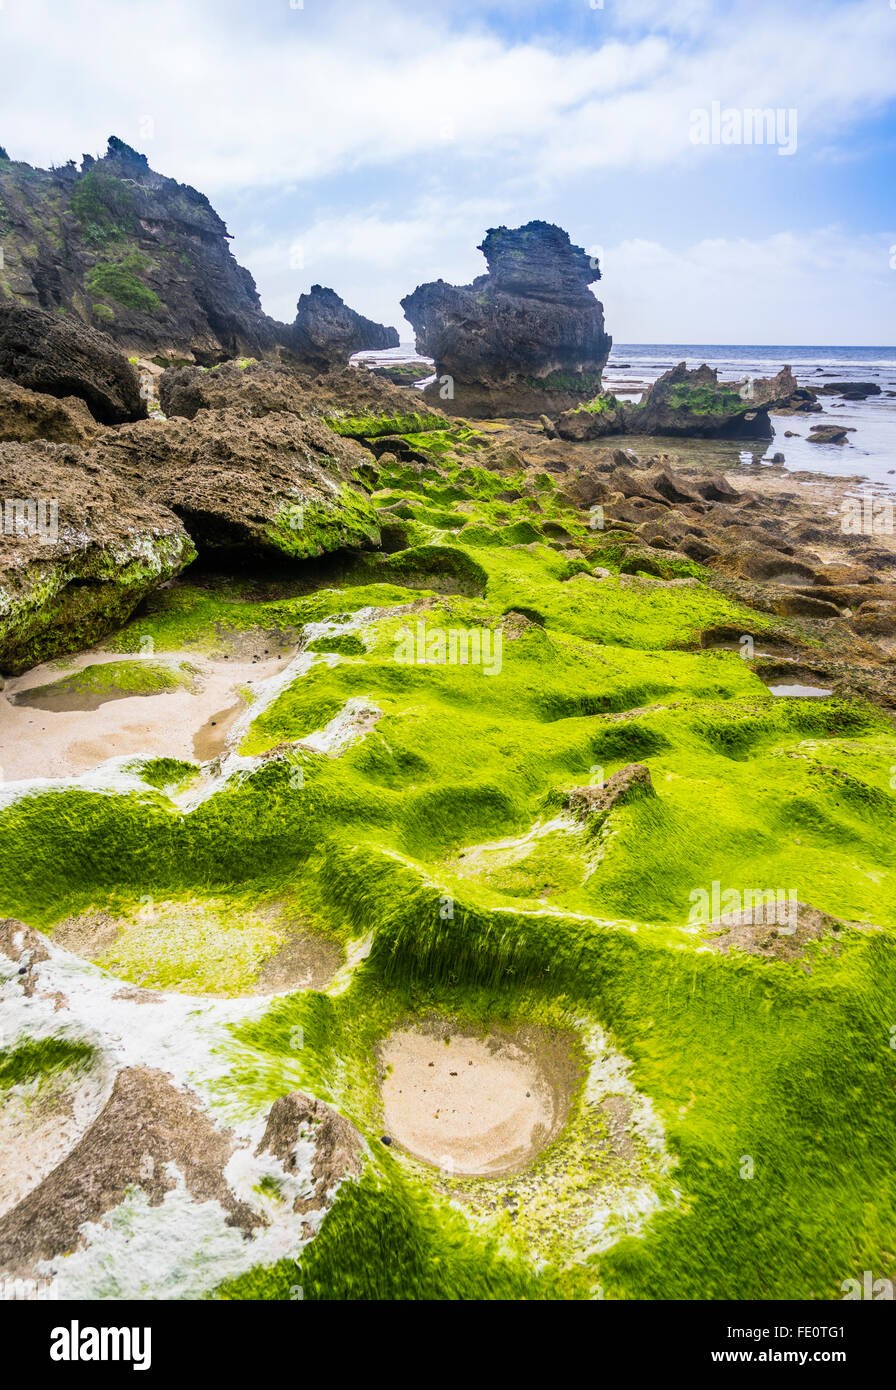 Lord Howe Island in the Tasman Sea, Unincorporated area of New South Wales, Australia. Algae covered rock at Middle - Stock Image